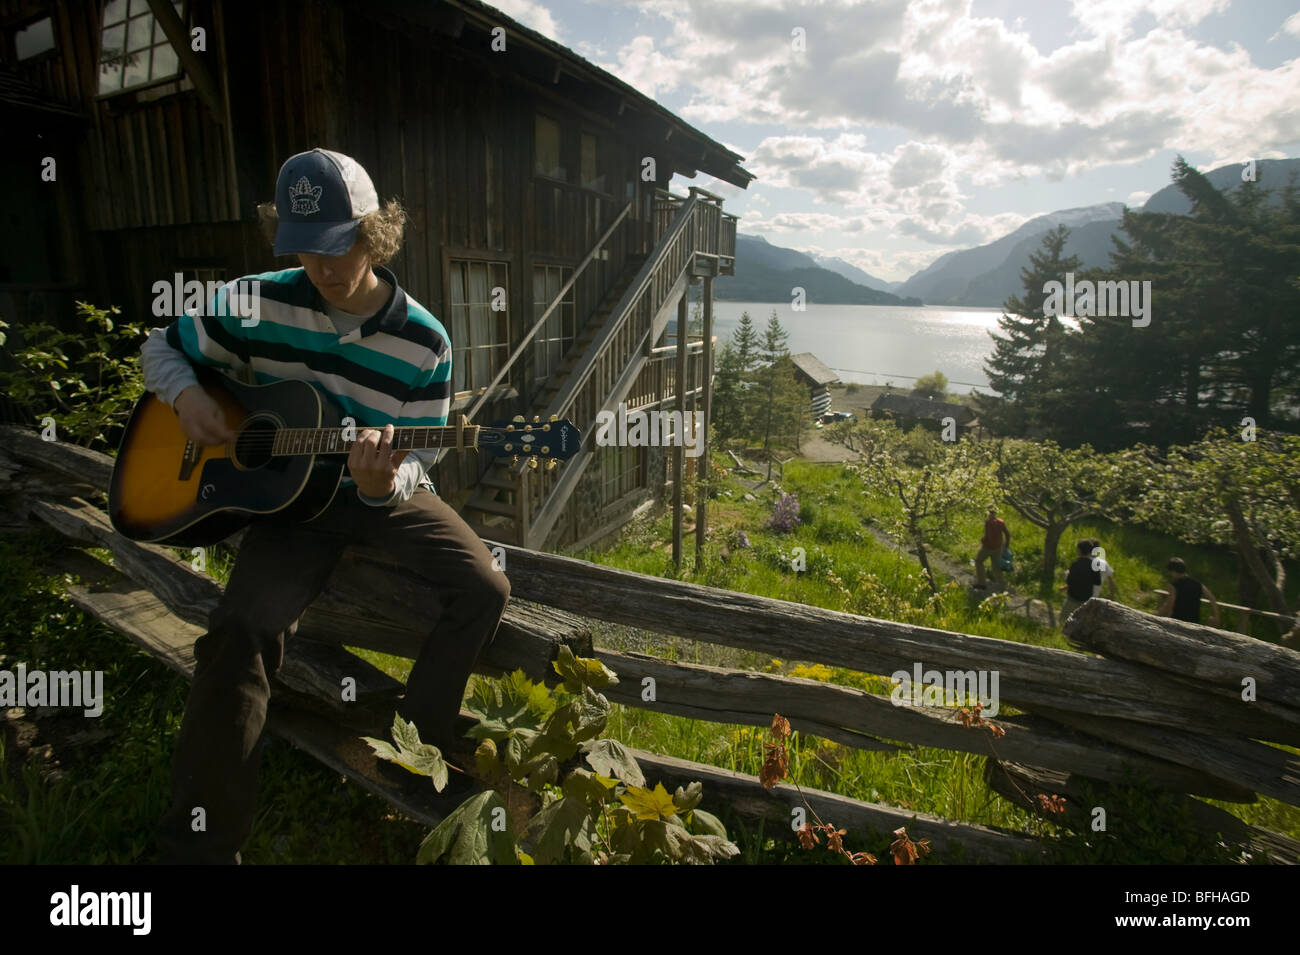 A young man plays his guitar  at the well known Strathcona Park Lodge, British Columbia, Canada. - Stock Image